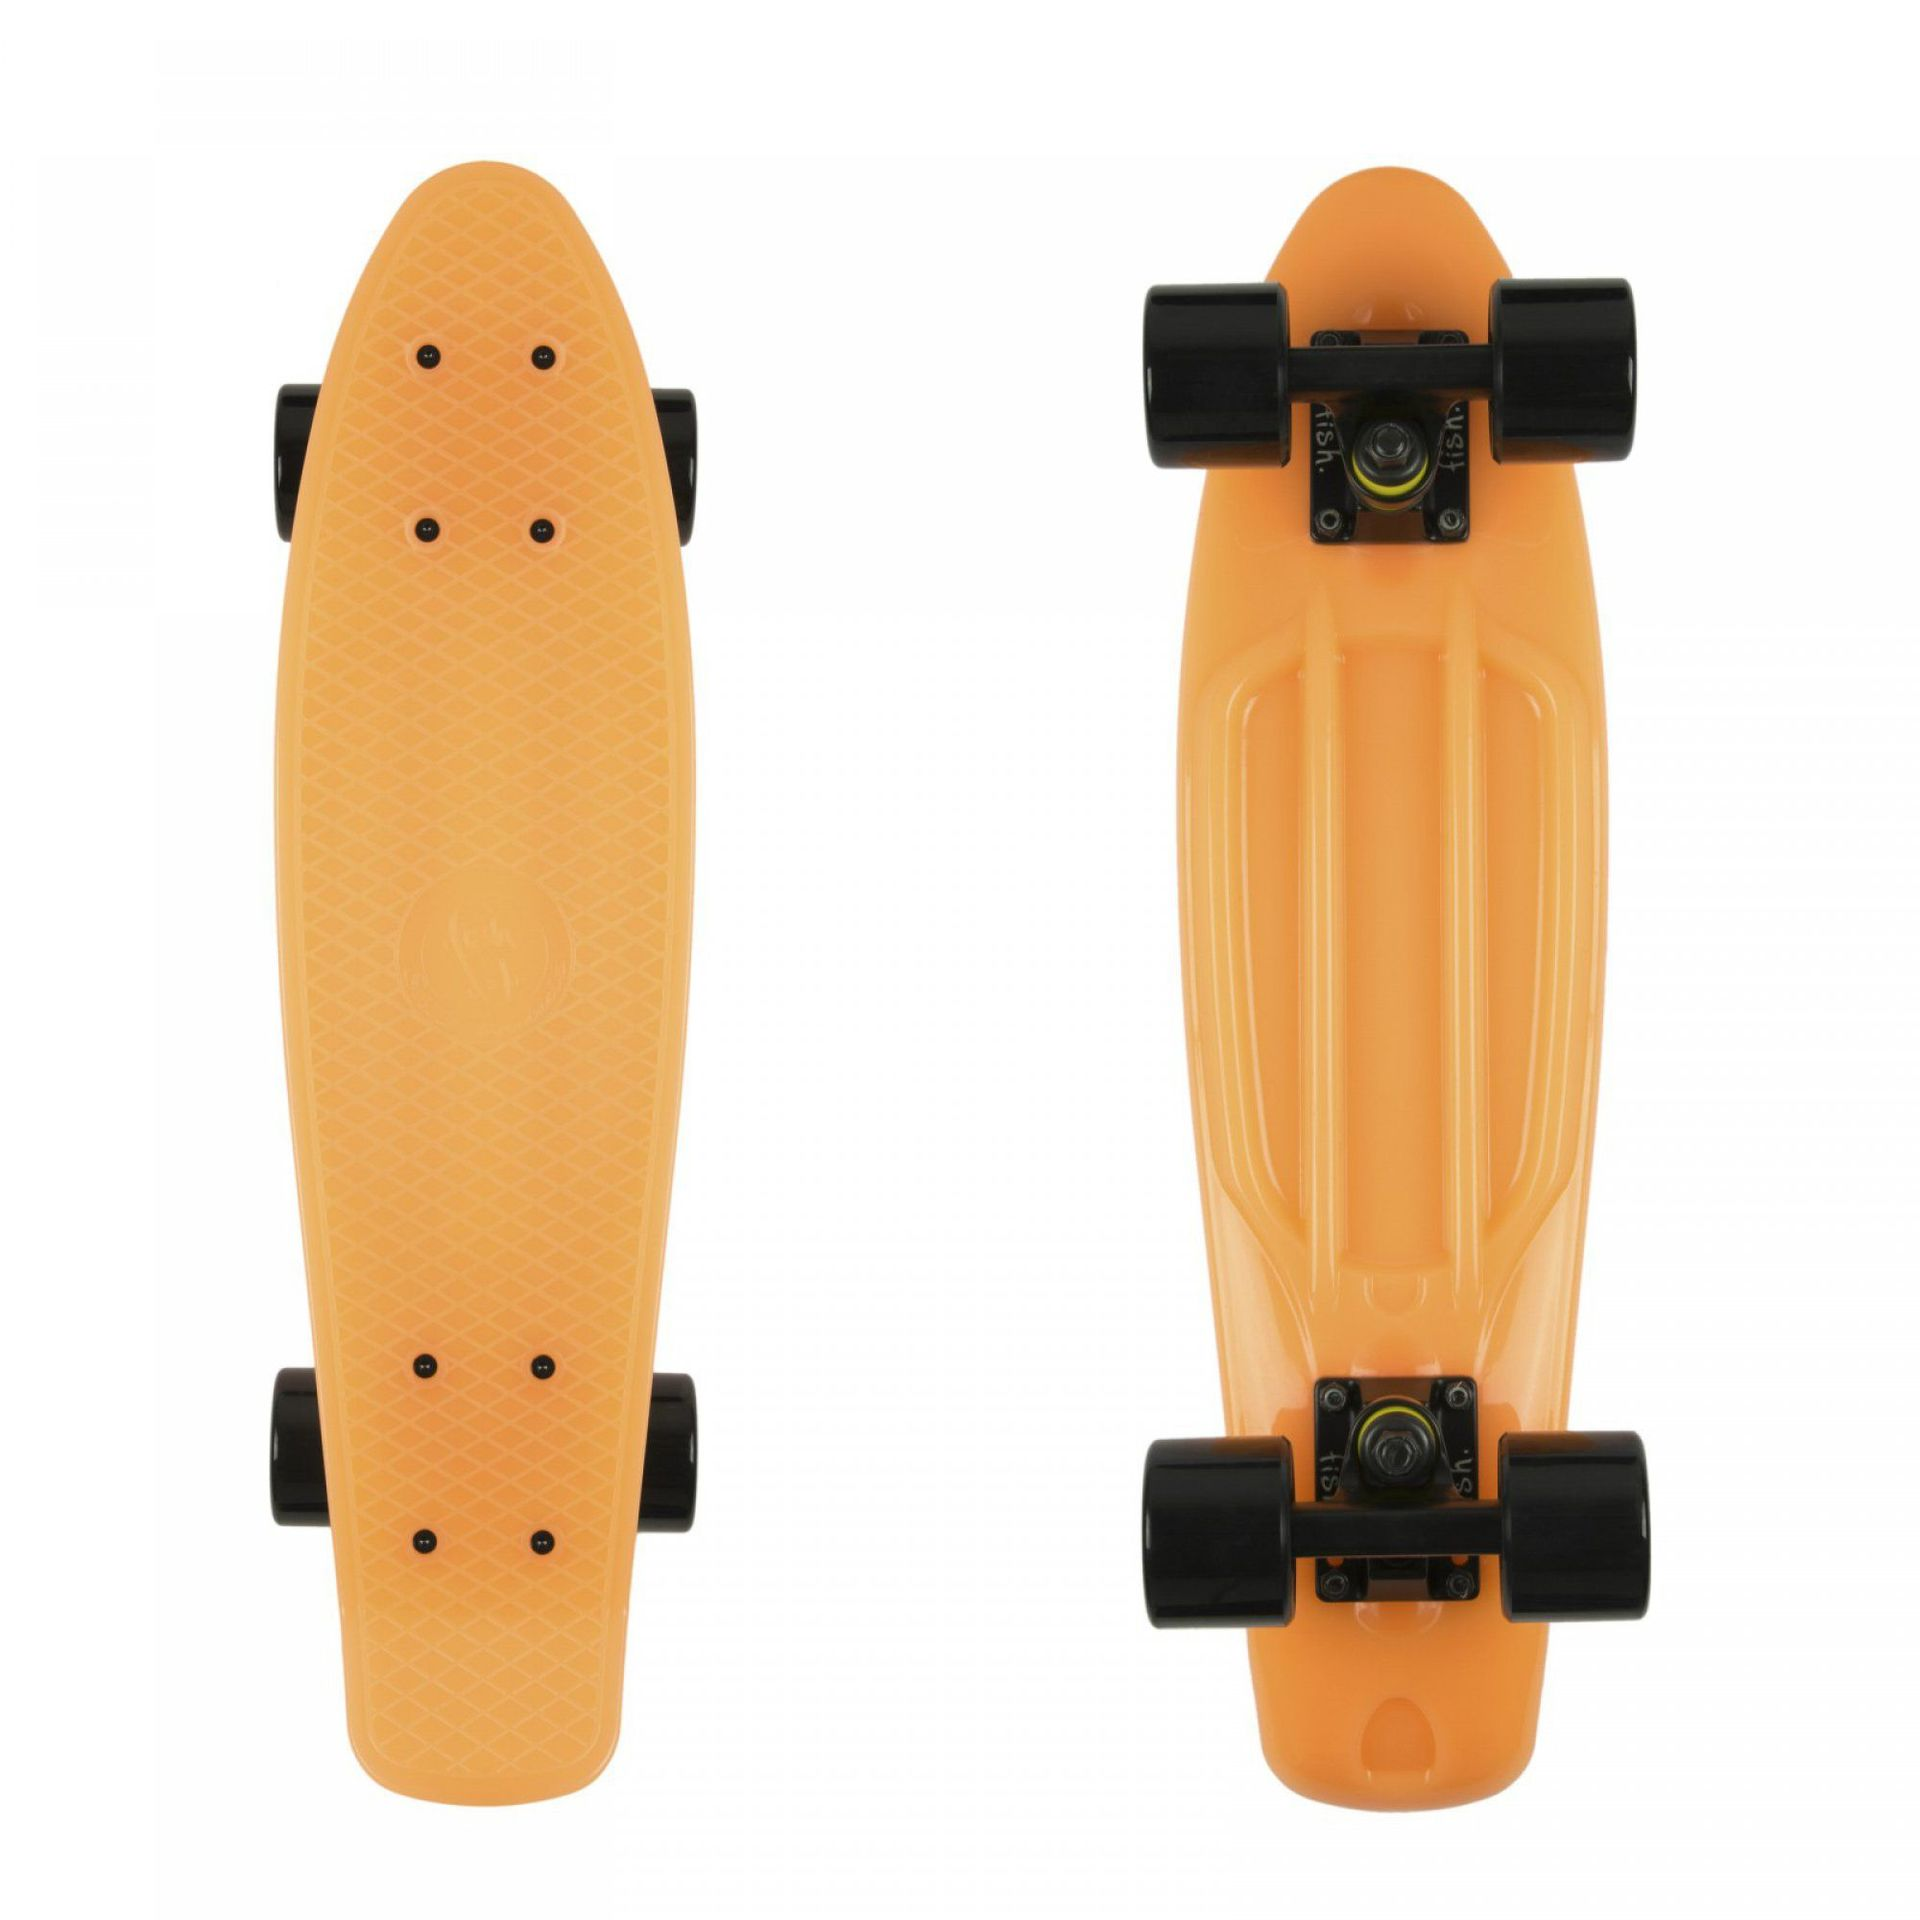 FISHBOARD FISH SKATEBOARDS CLASSIC GLOW ORANGE|BLACK 1